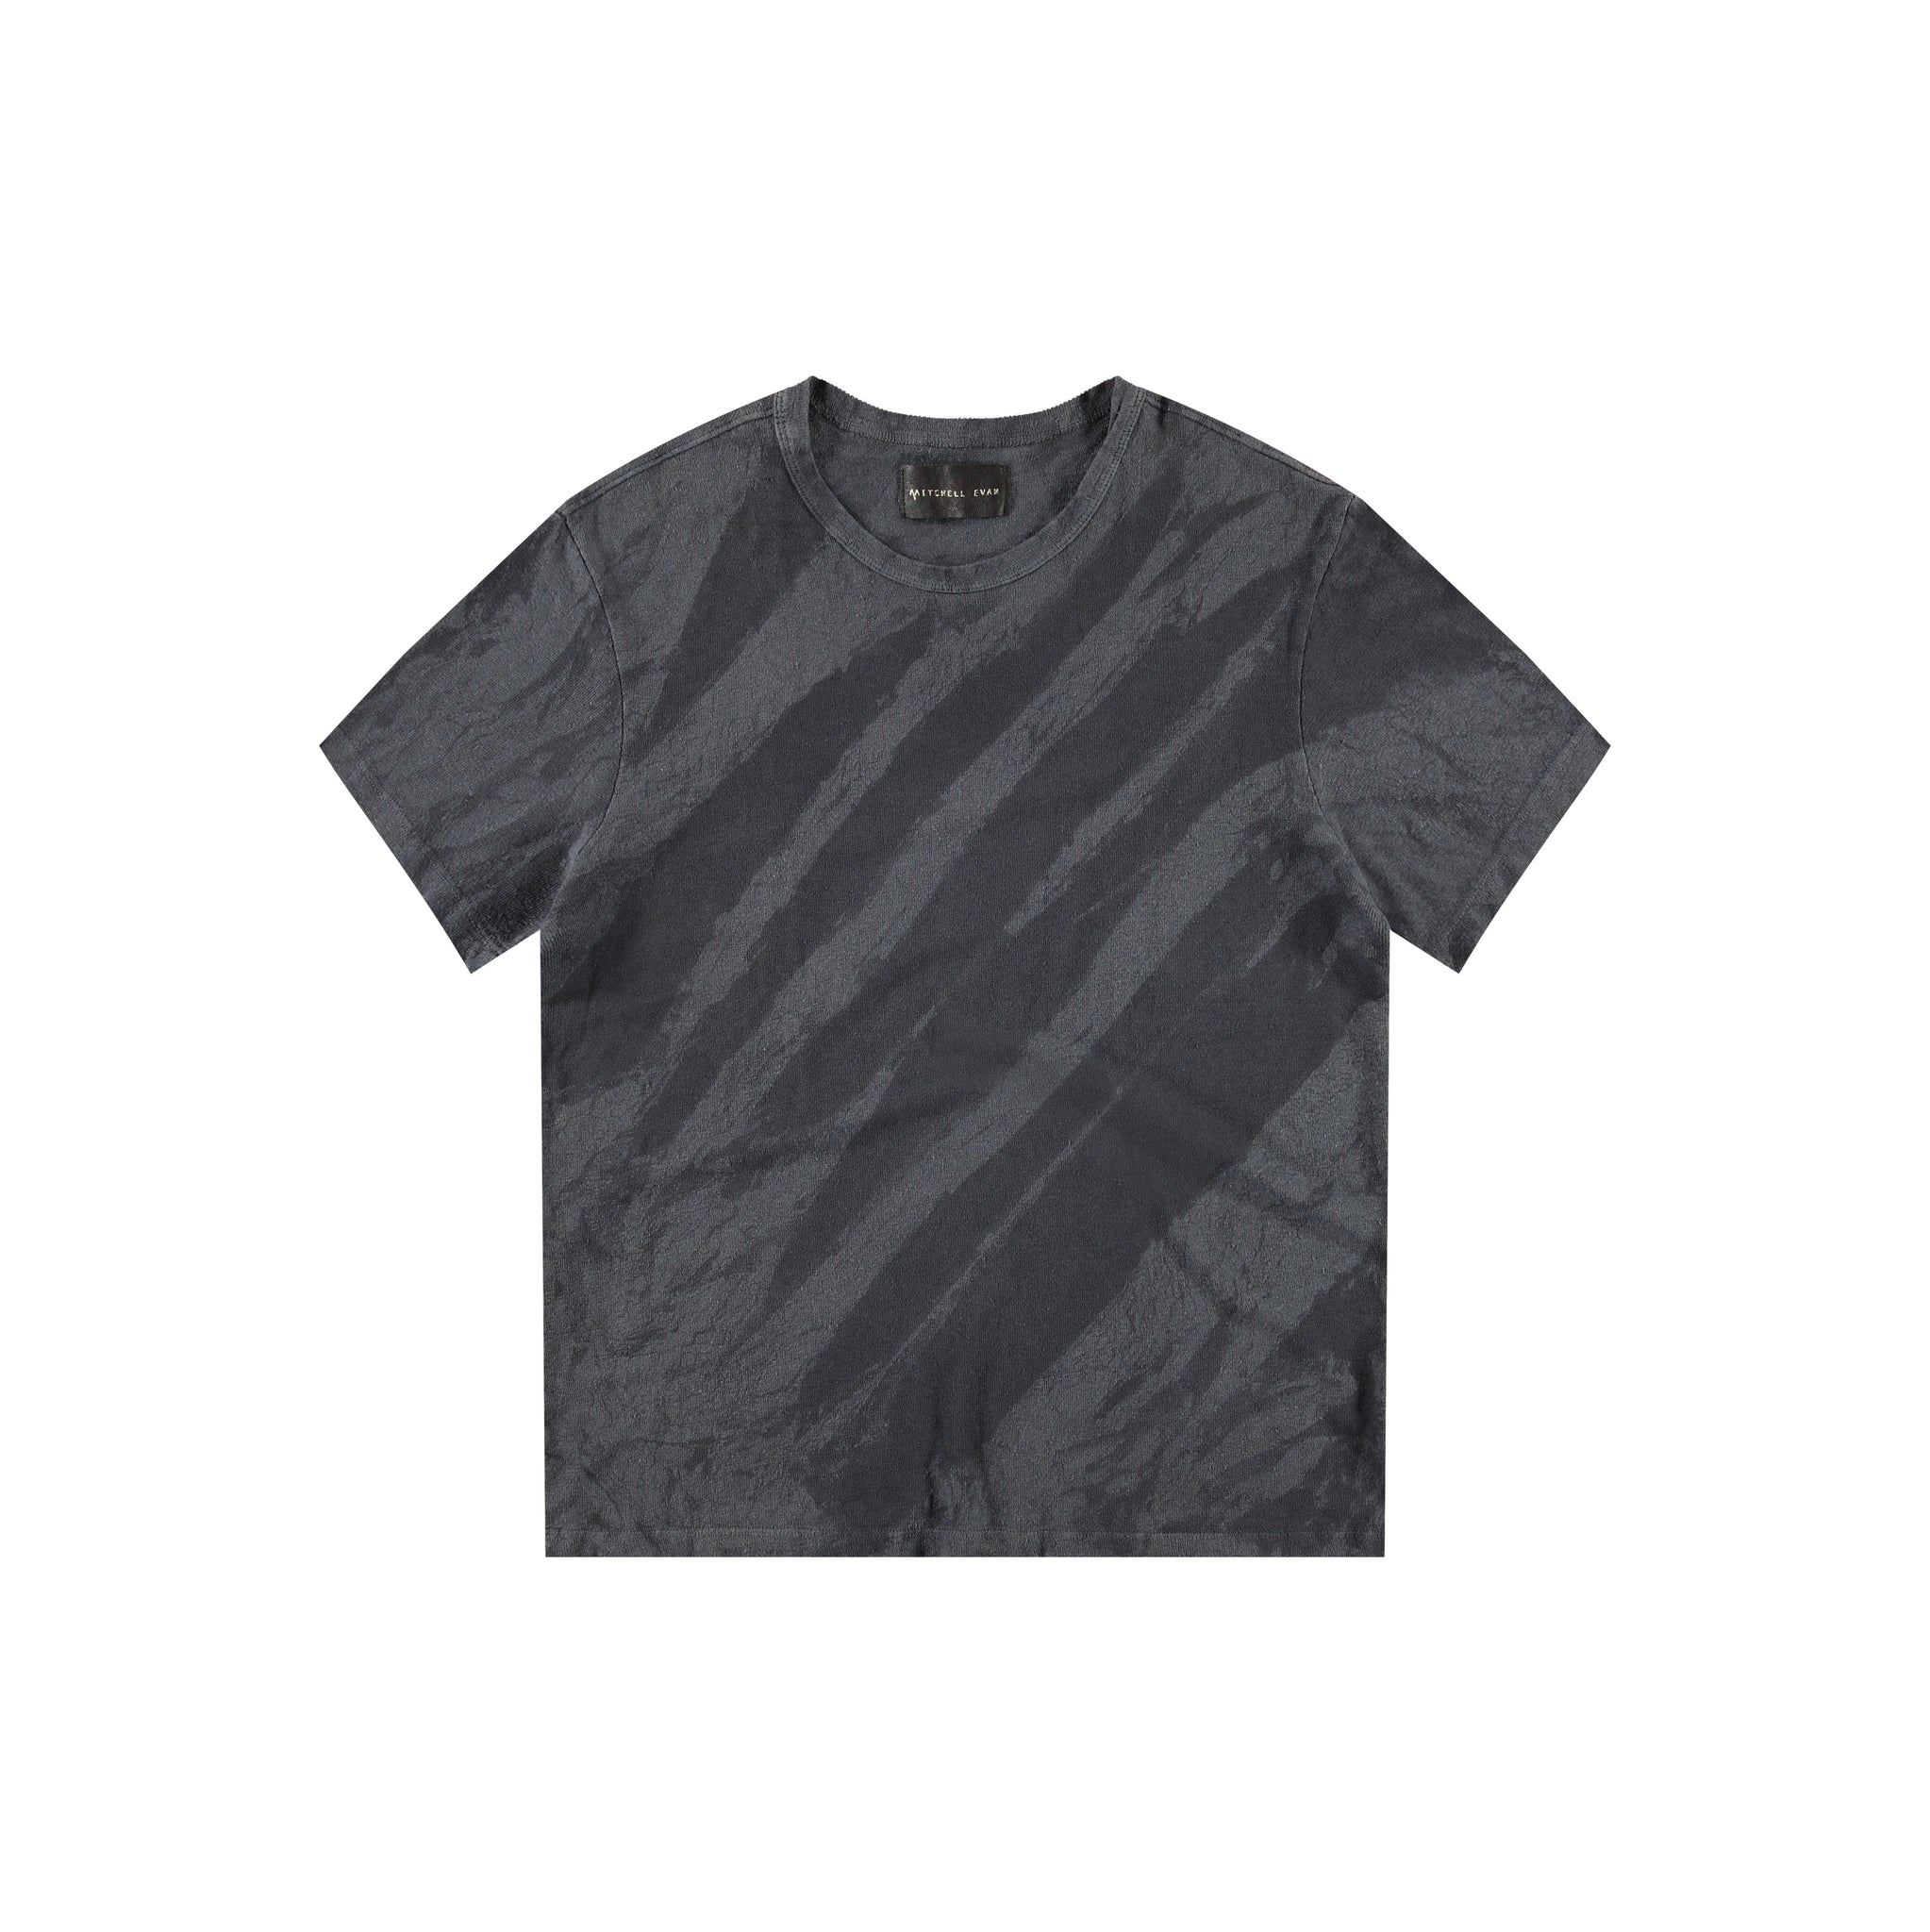 Steve T-Shirt in Dark Grey Crackle - Mitchell Evan